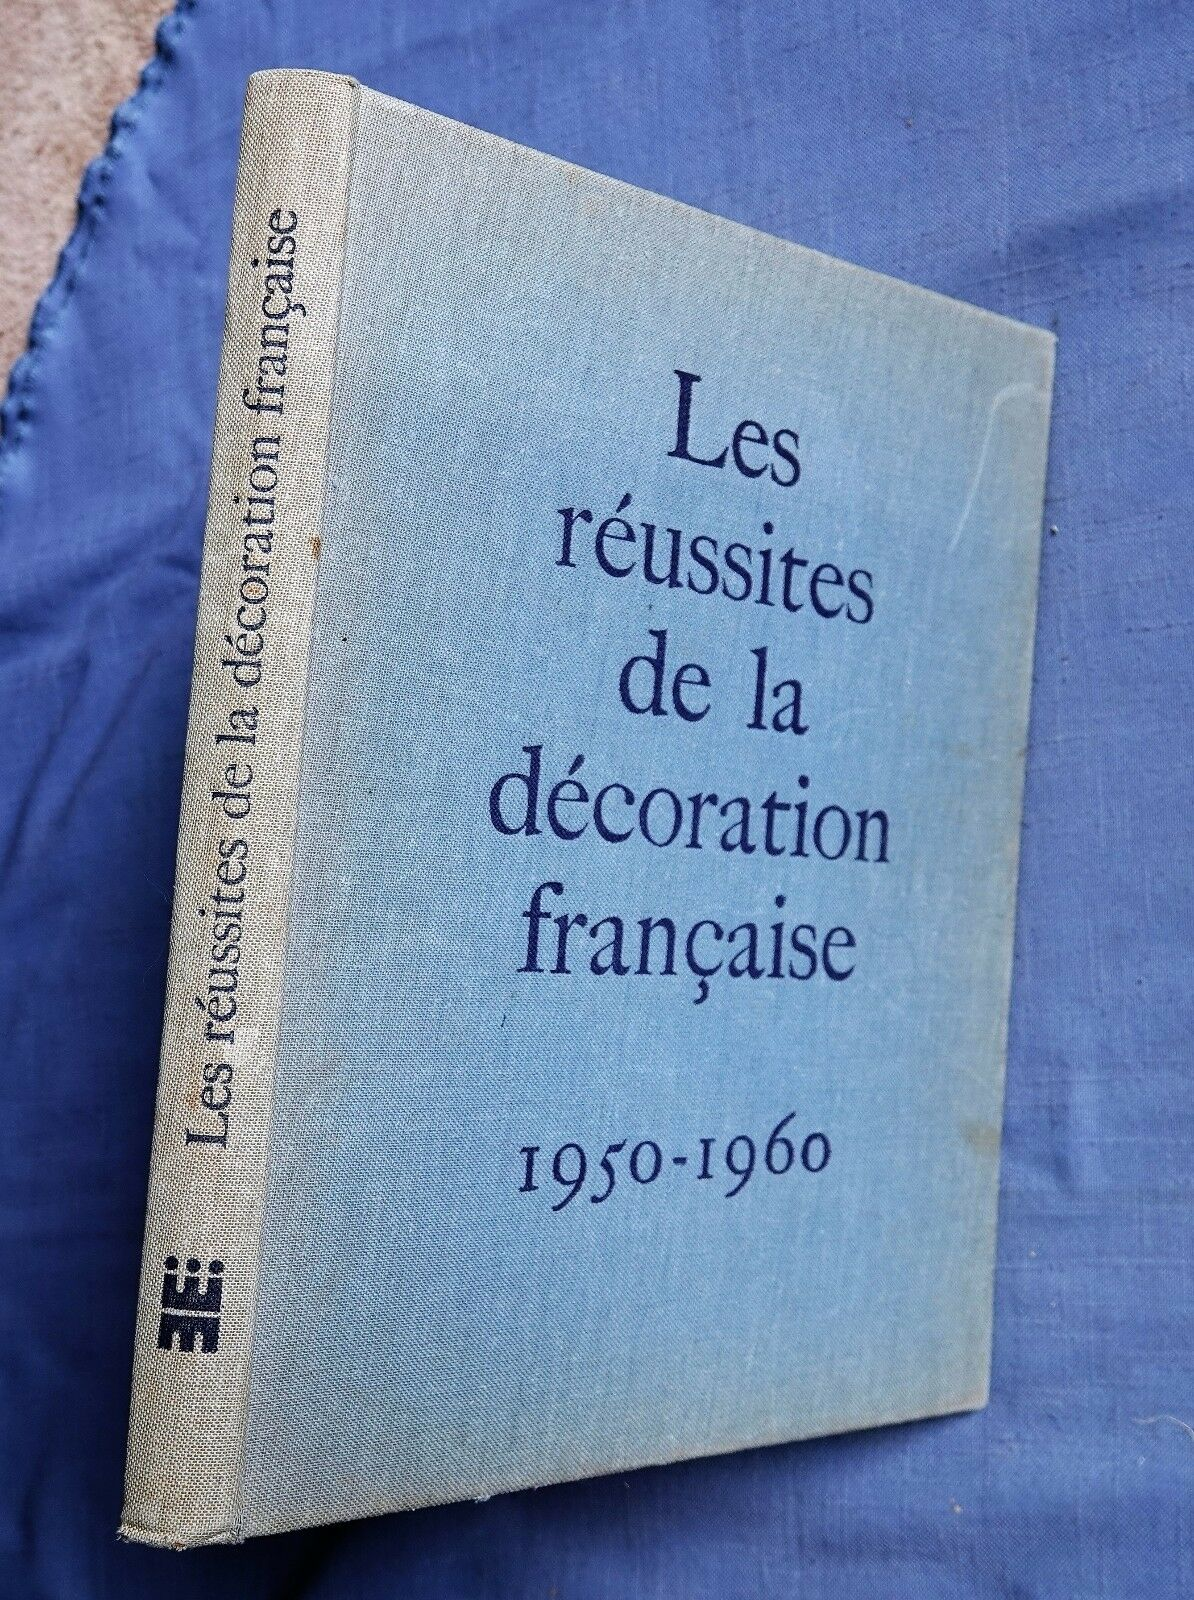 Decoration Francaise Les Reussites De La Decoration Francaise 1950 1960 Thomas Kernan